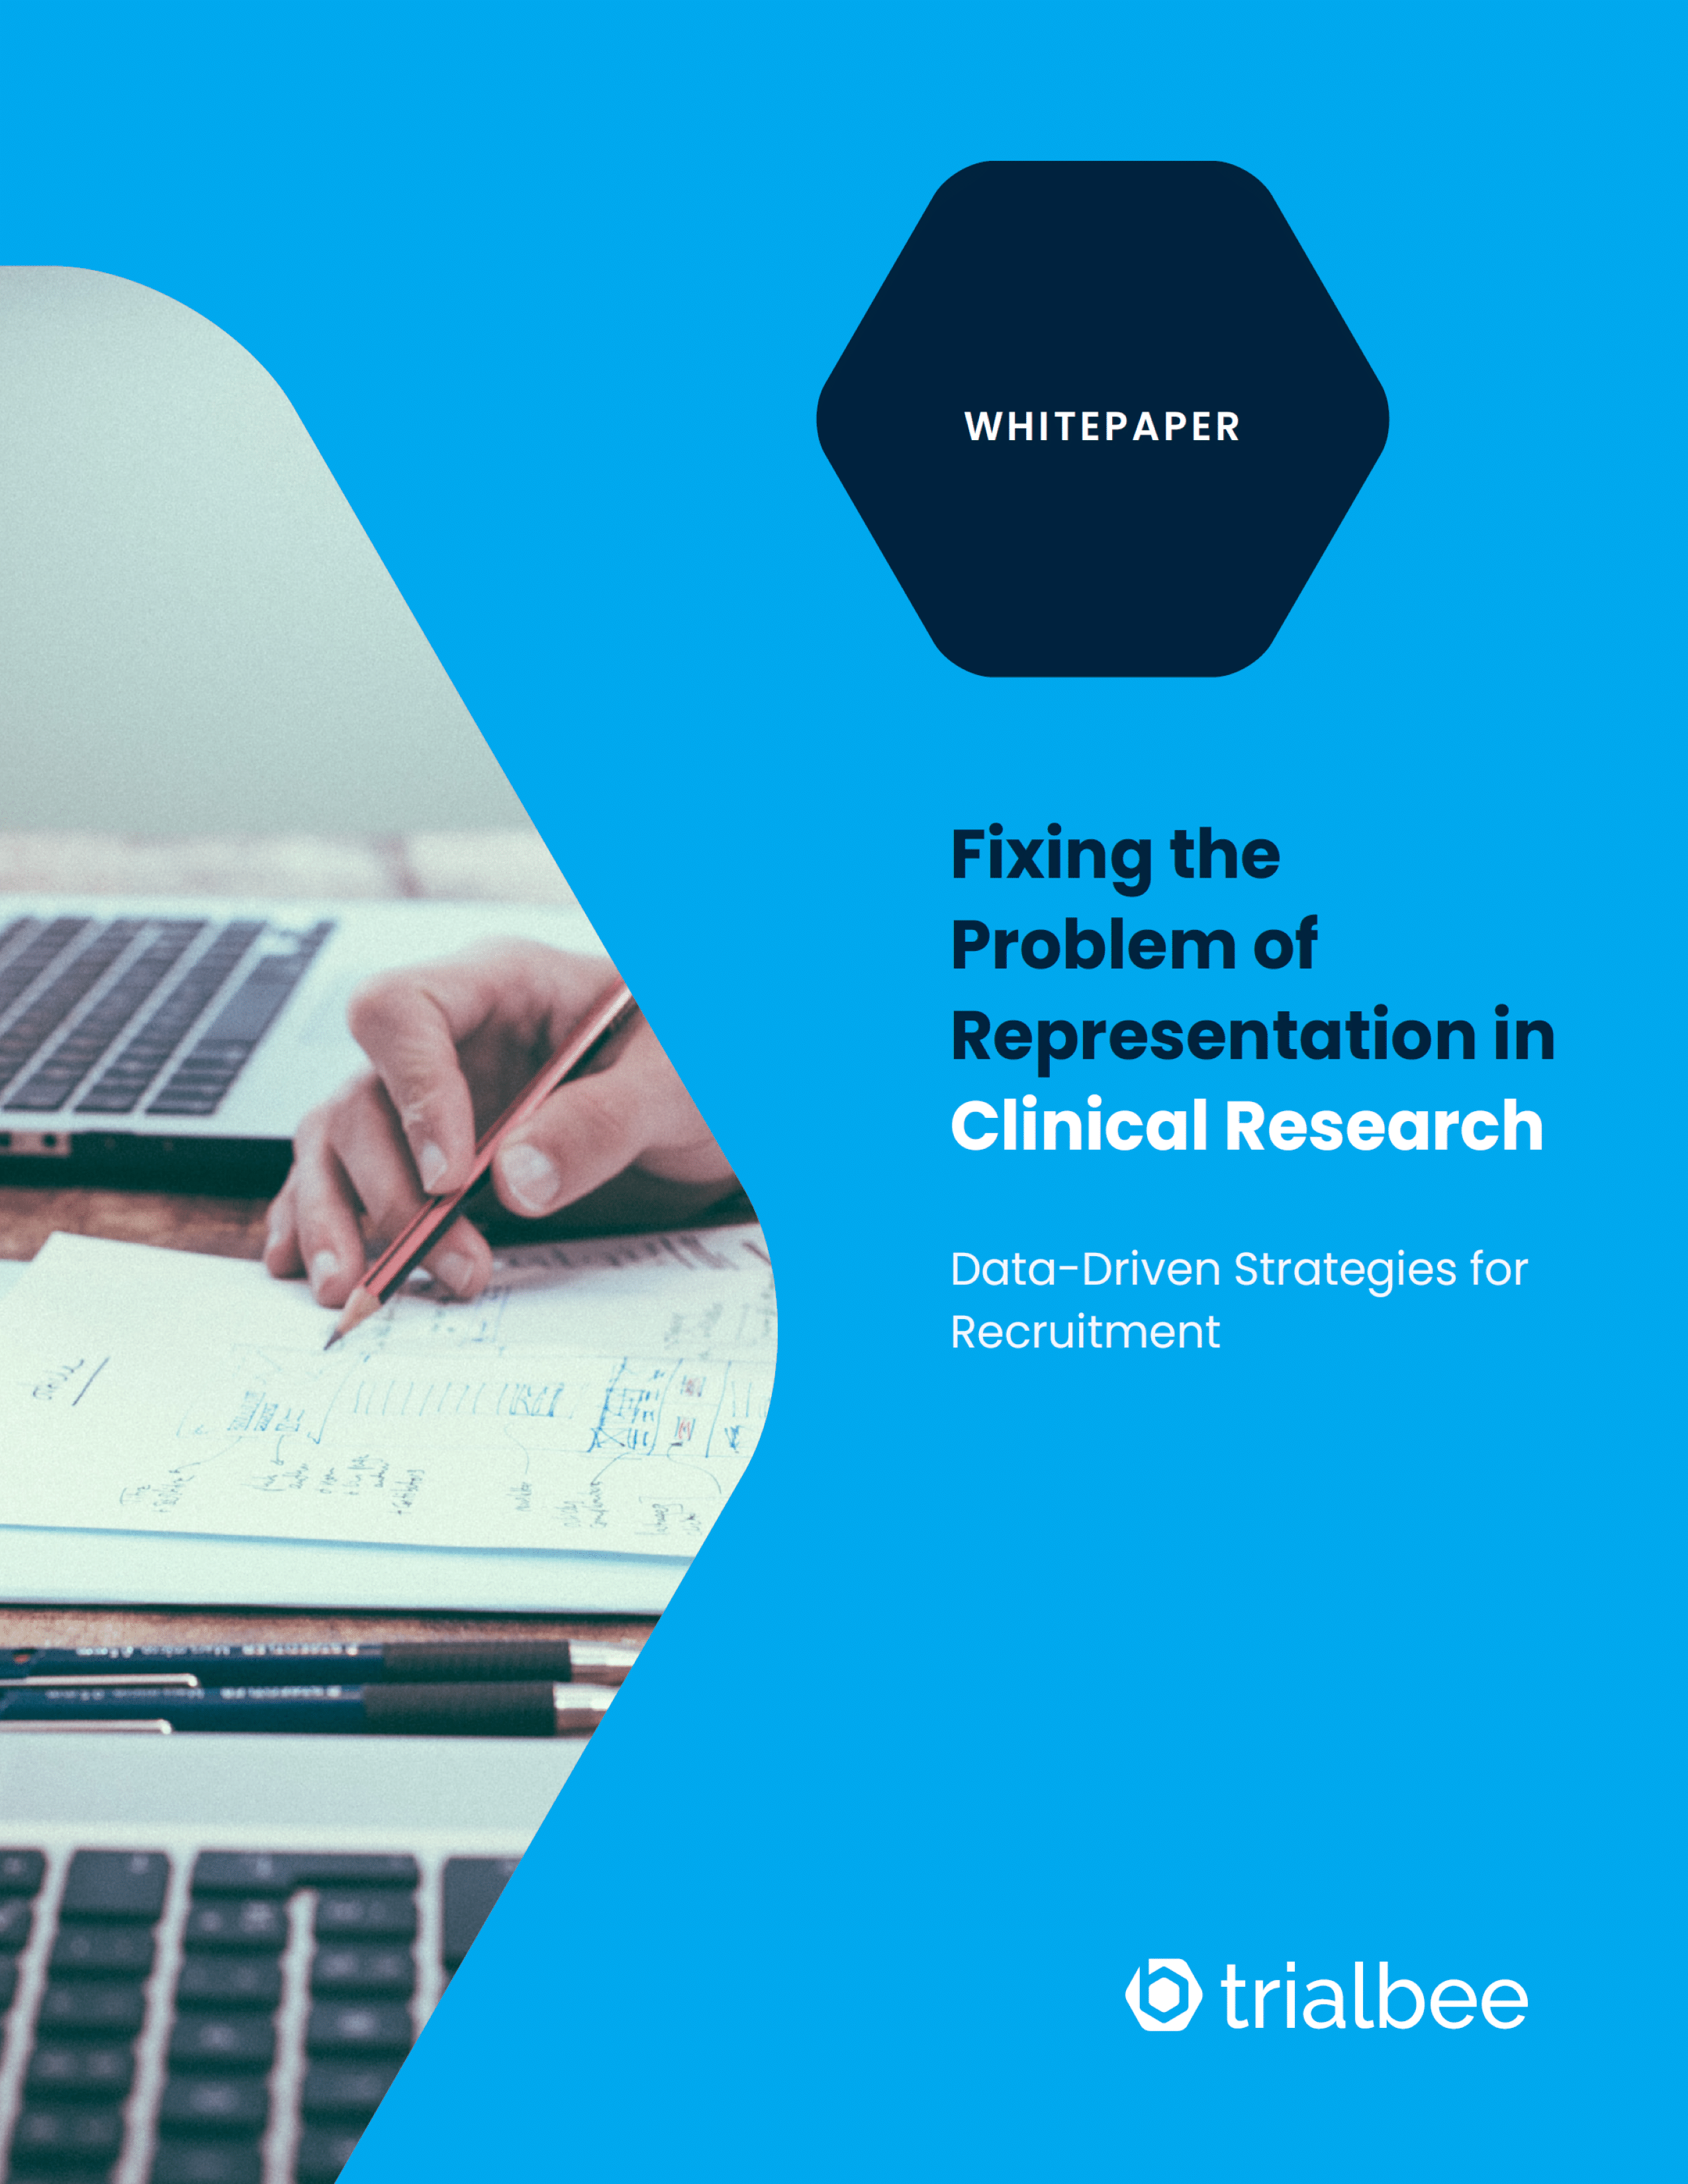 Fixing the Problem of Representation in Clinical Research: Data-Driven Strategies for Recruitment